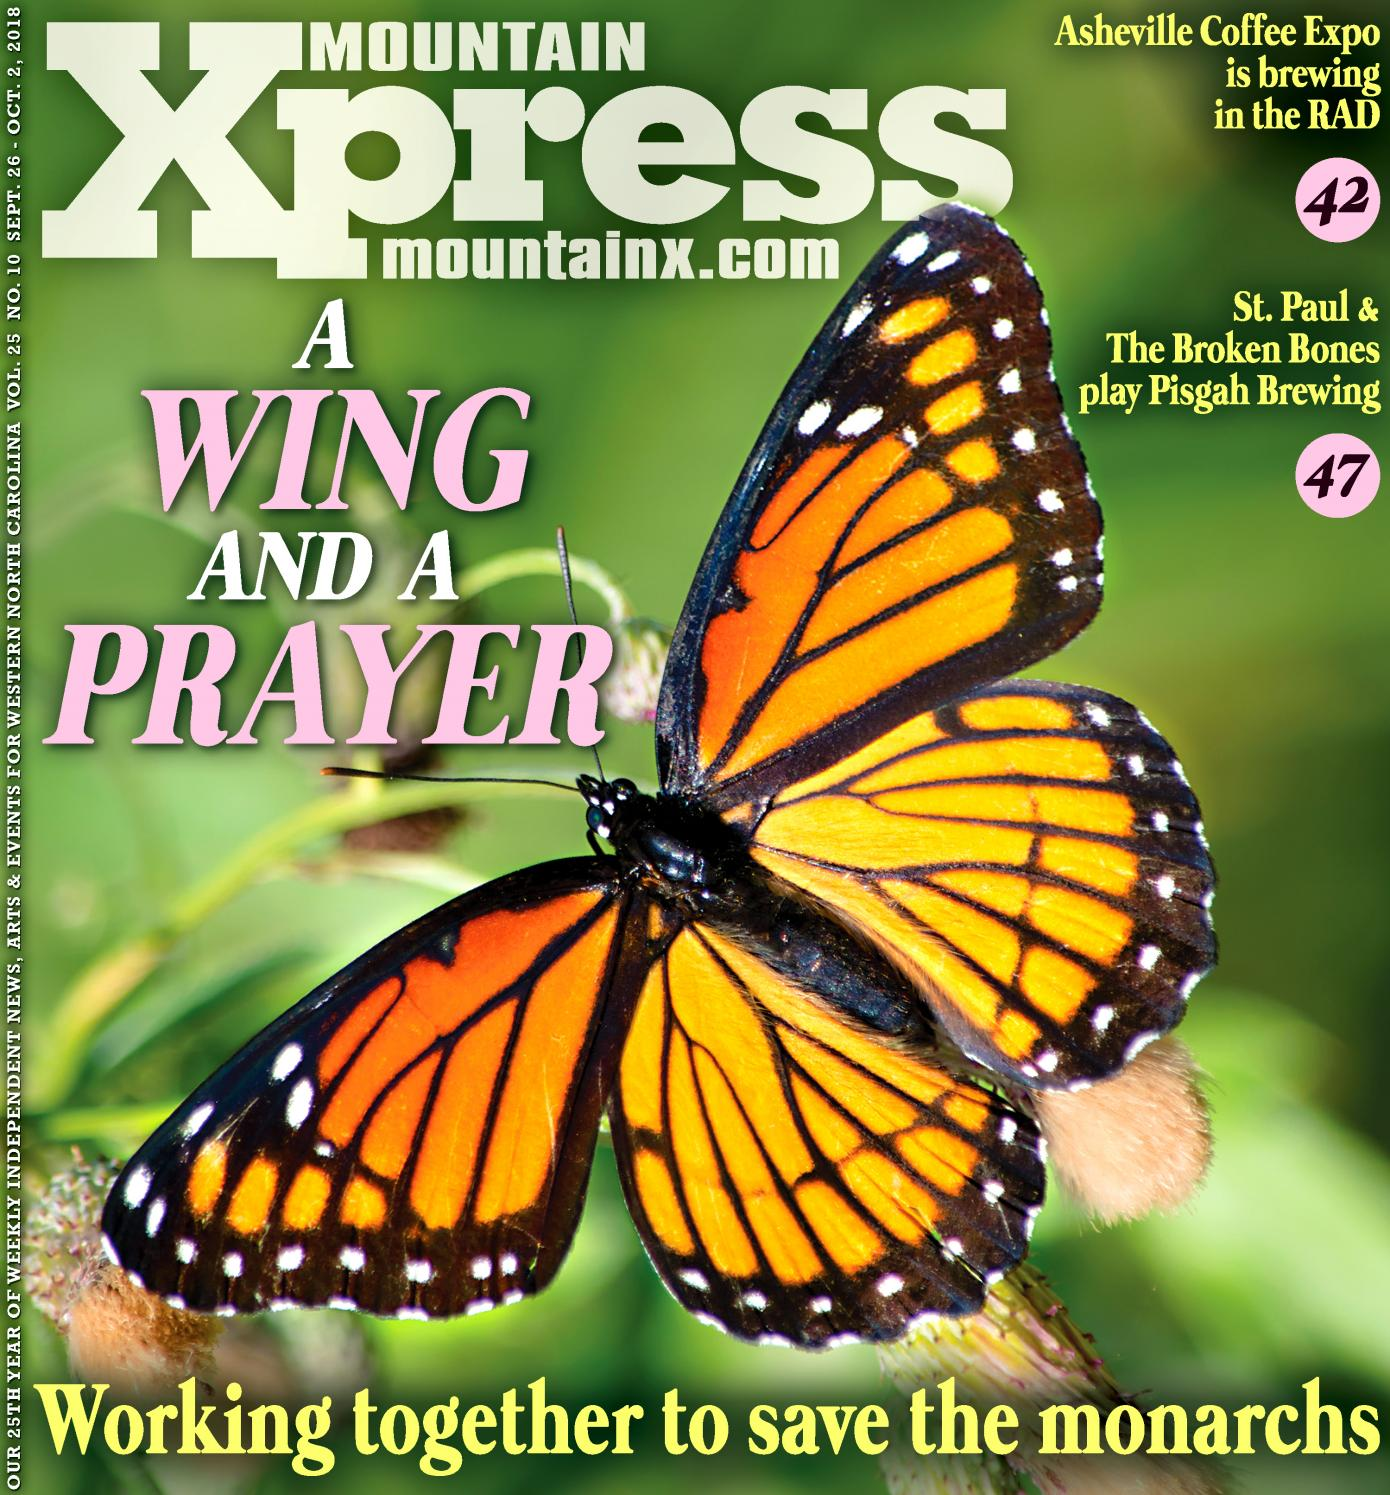 00a5150e0ad2 Mountain Xpress 09.26.18 by Mountain Xpress - issuu